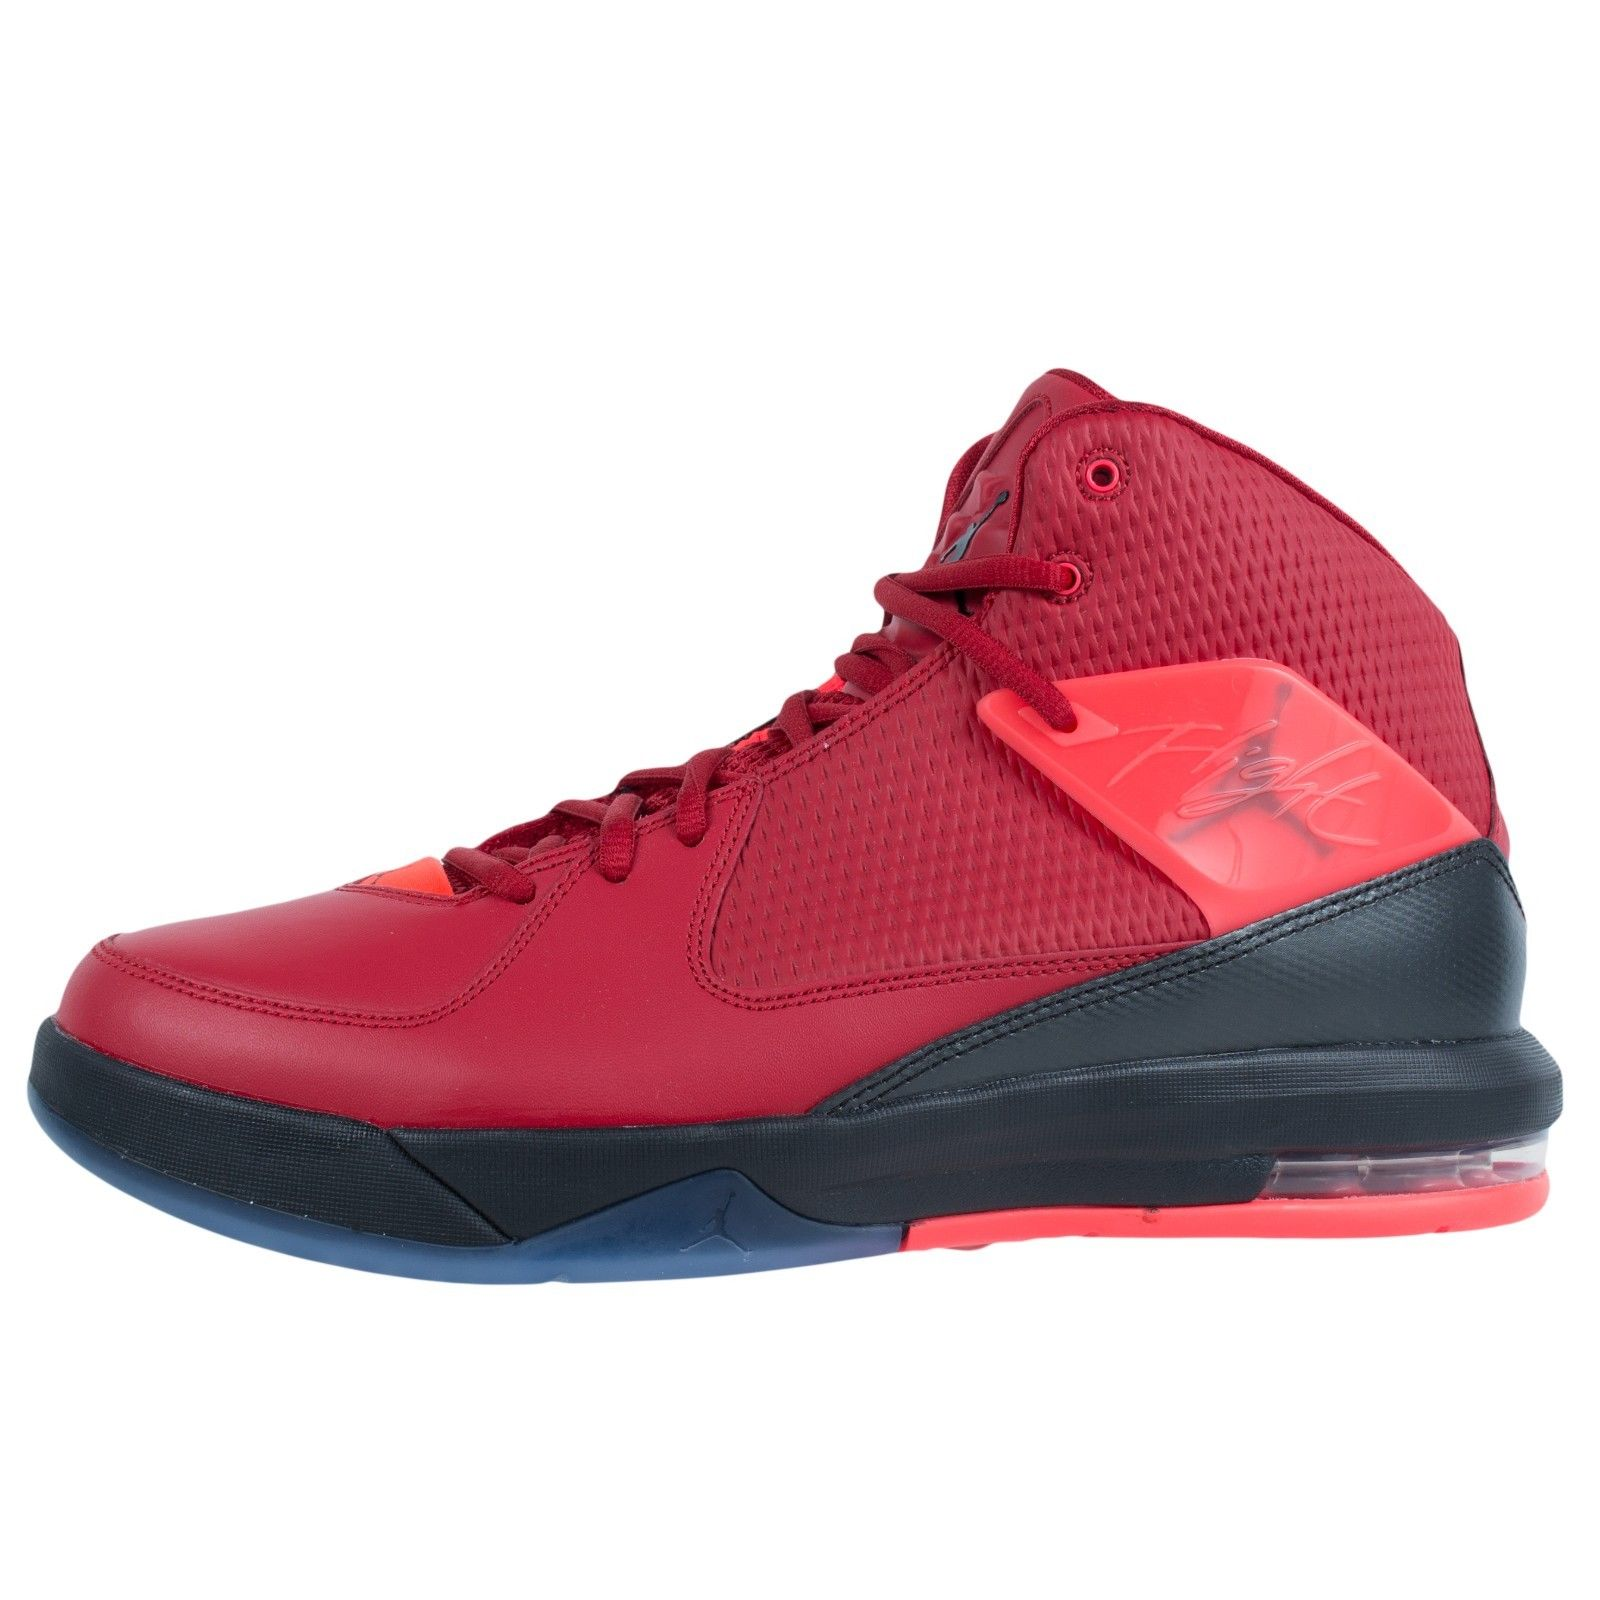 NIKE JORDAN AIR INCLINE BASKETBALL SHOES GYM RED INFRARED 23 BLACK 705796  607